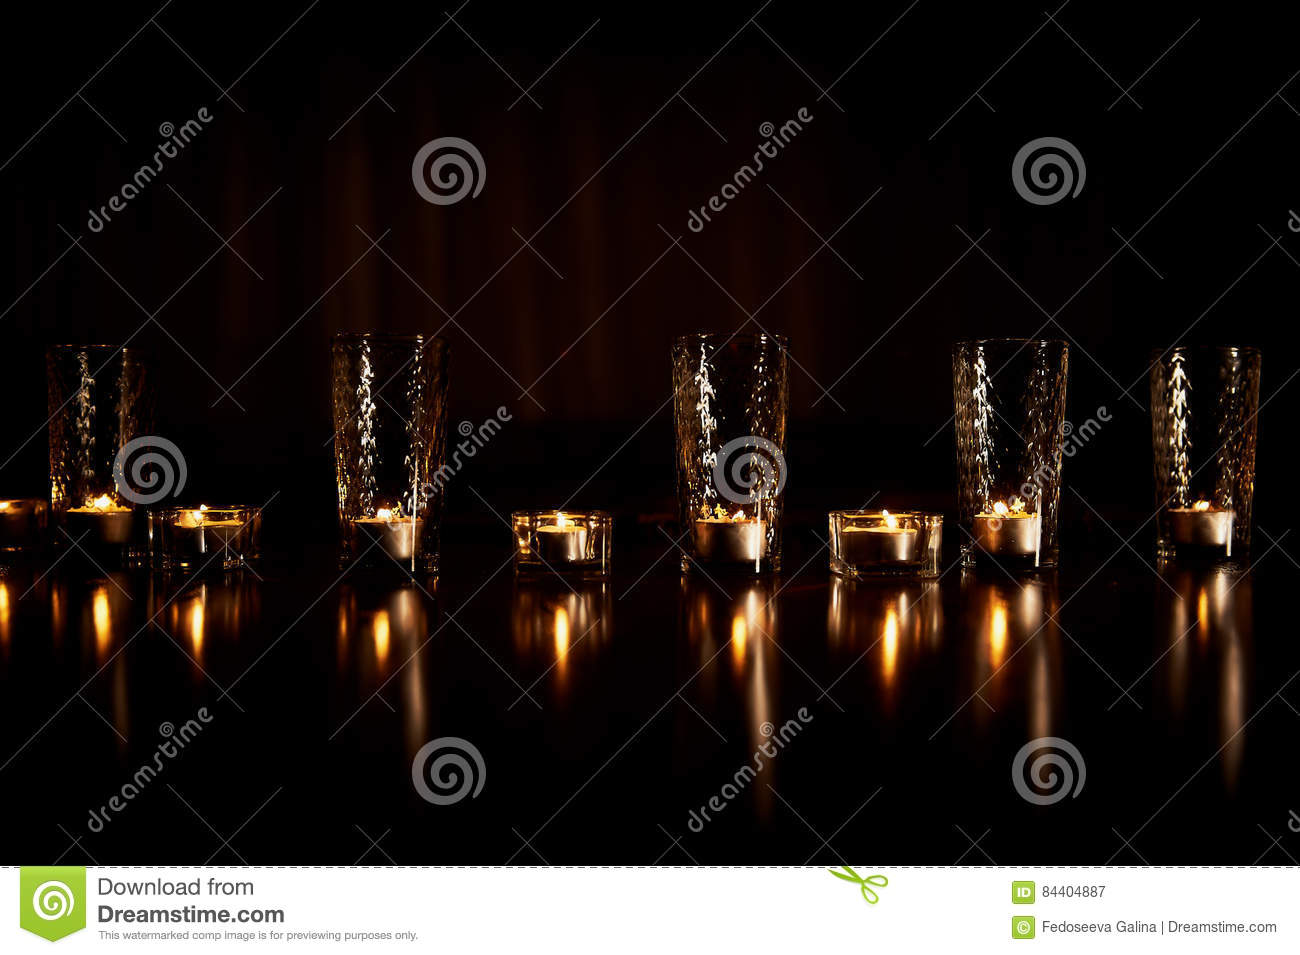 Burning Candles In Transparent Glasses, Shiny Floor, The